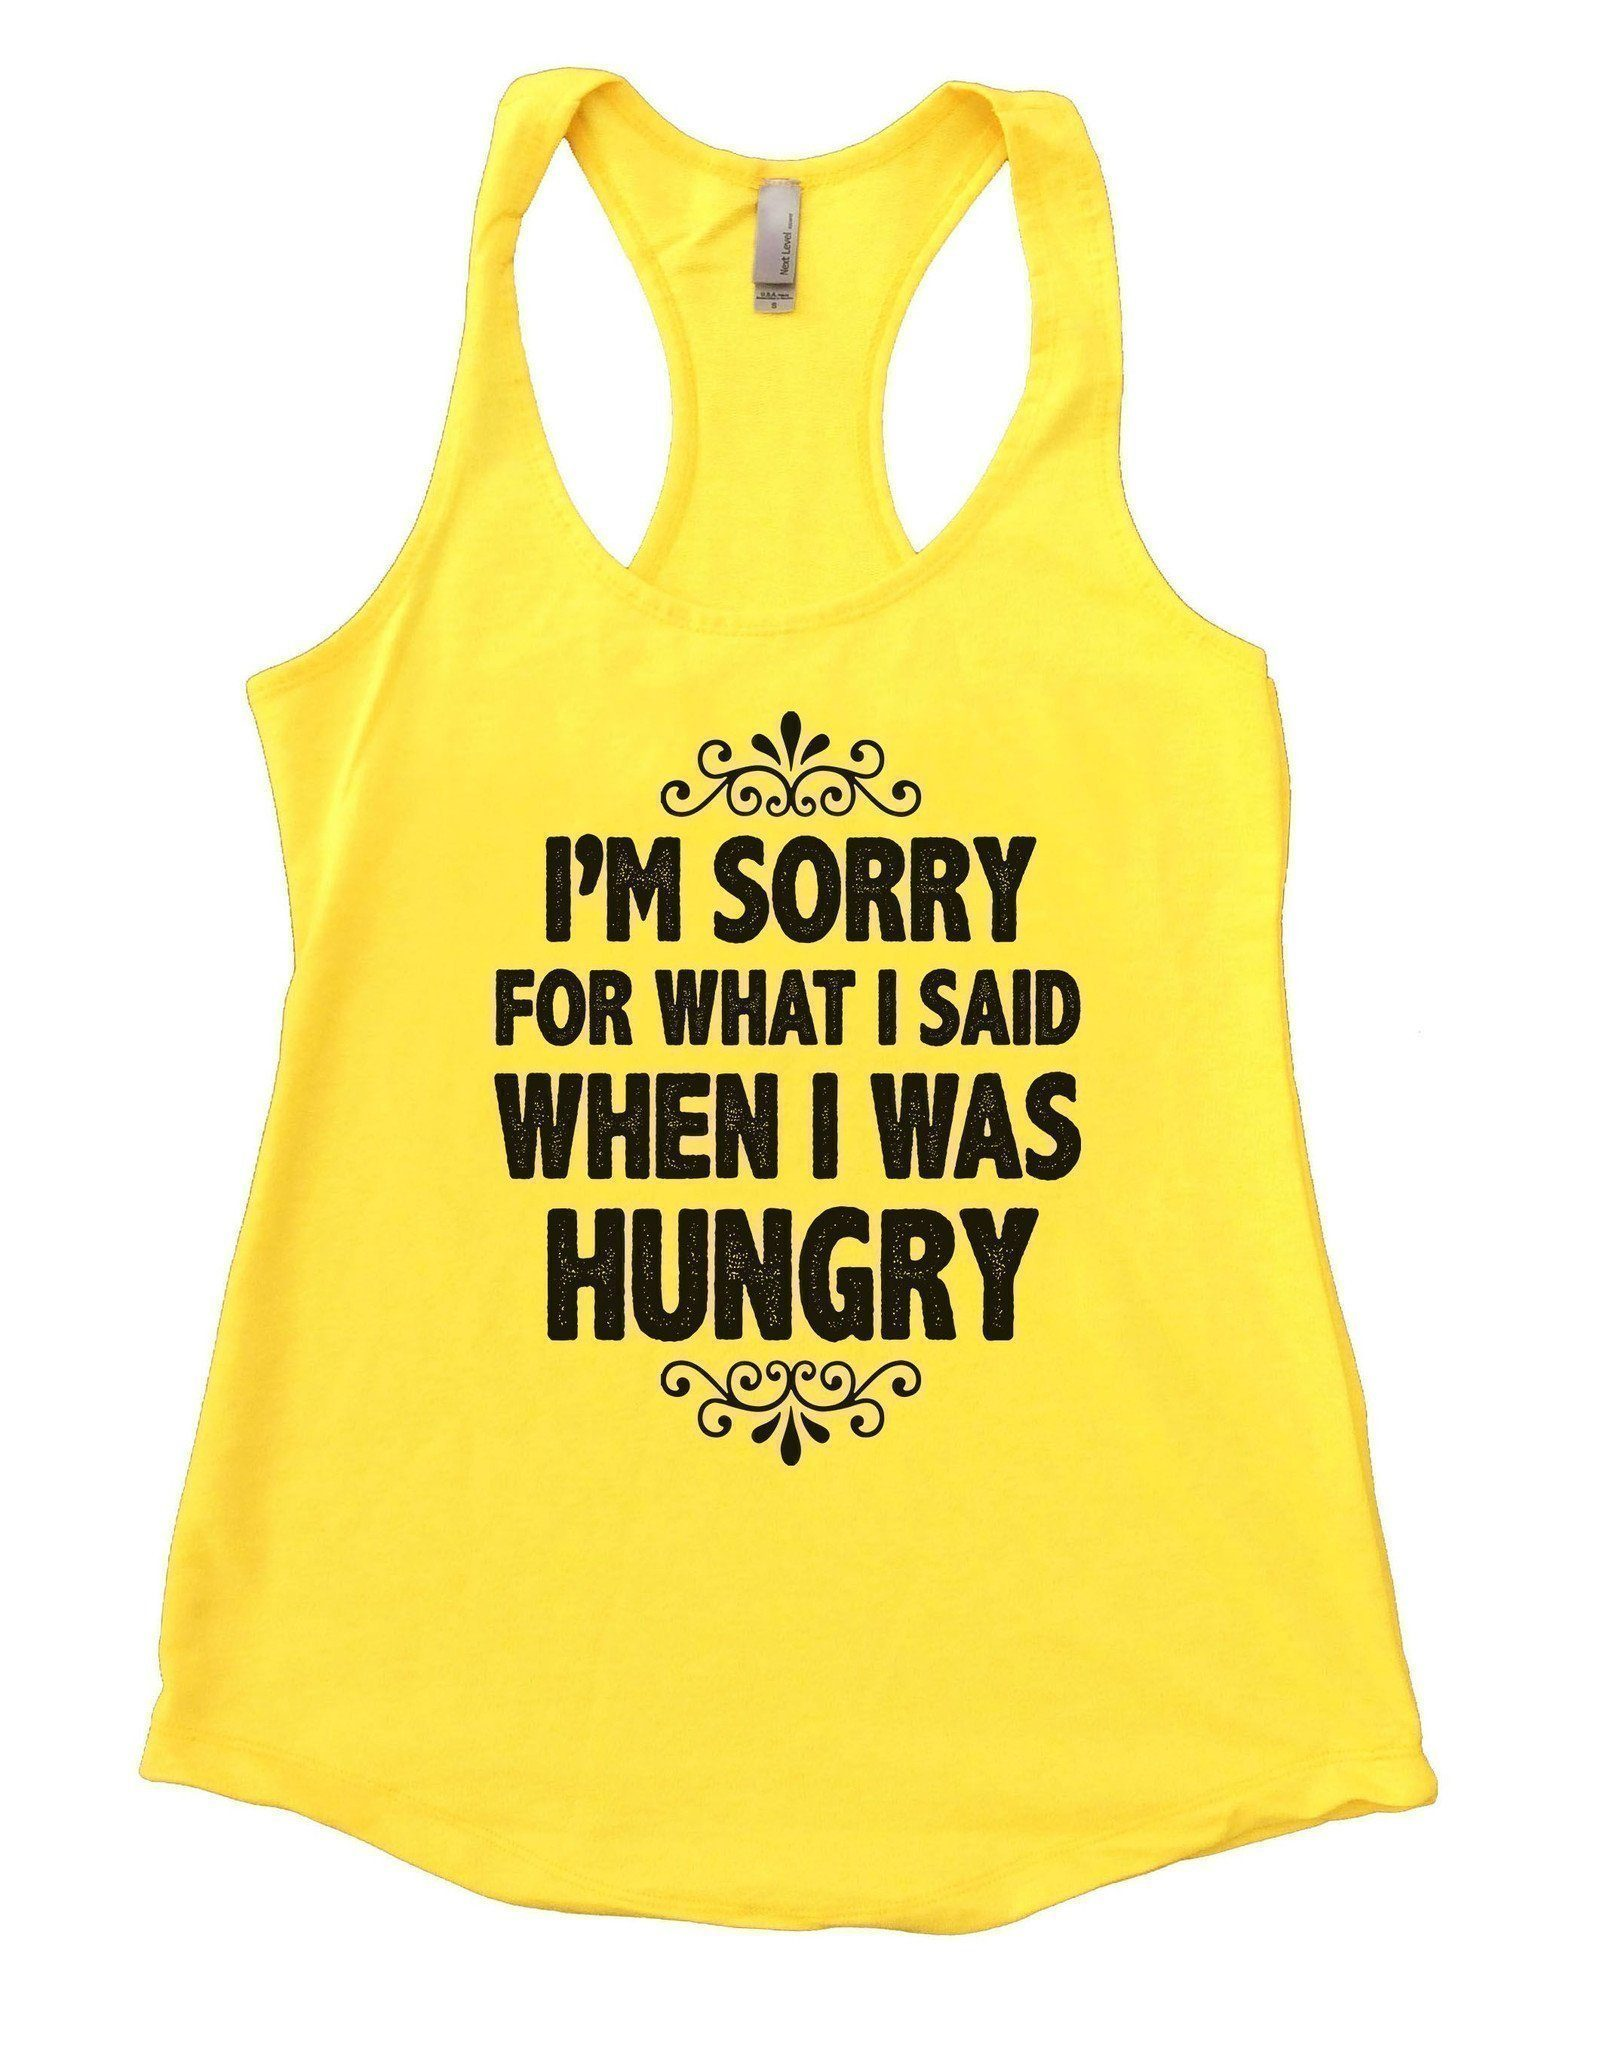 de52c8000ec34 Details about I m Sorry For What I Said When I Was Hungry Womens Workout  Tank Top